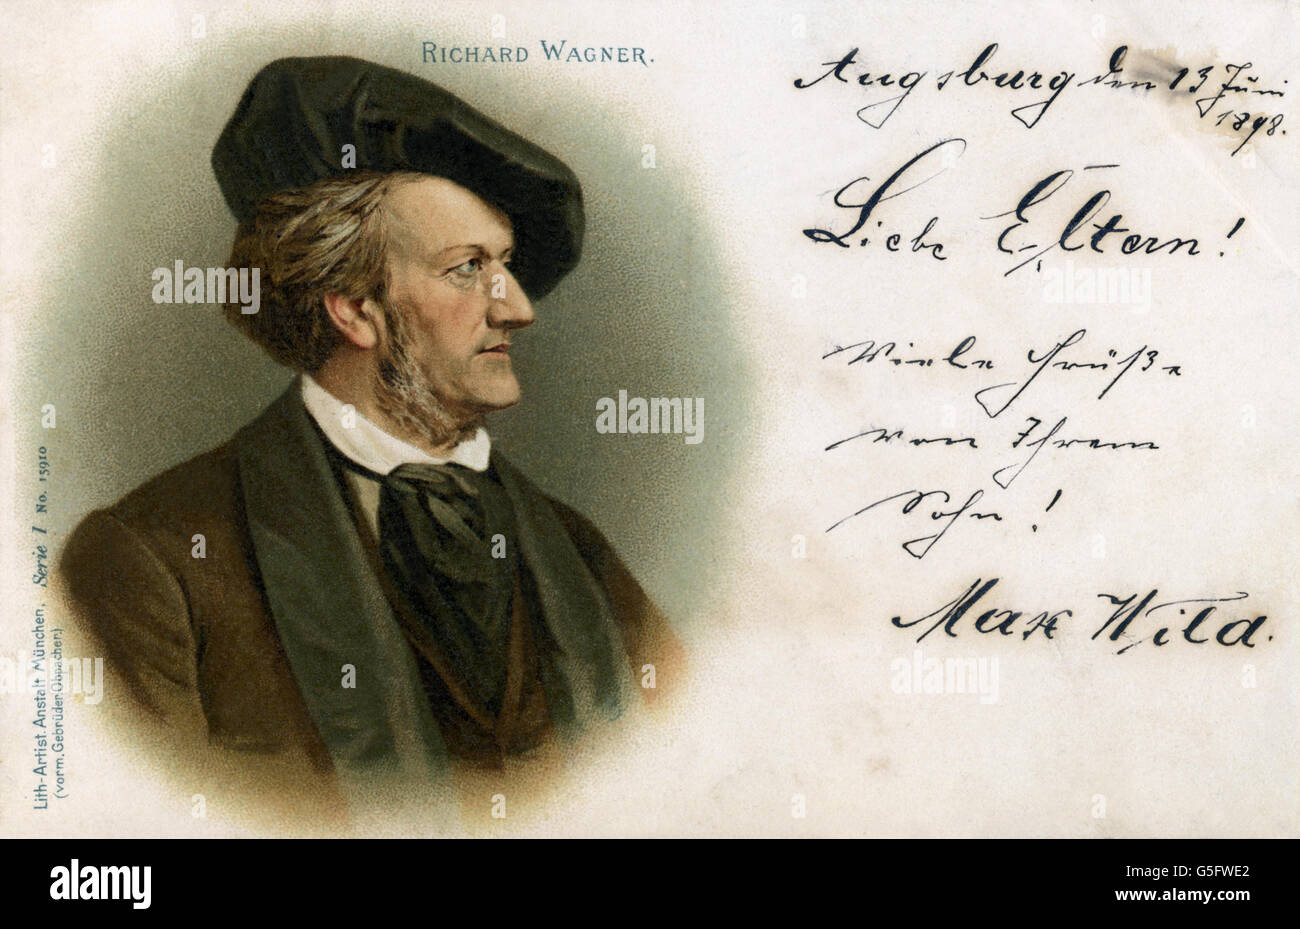 Wagner, Richard, 22.5.1813 - 13.2.1883, German composer, portrait, picture postcard, print: Lithographic Artistic - Stock Image